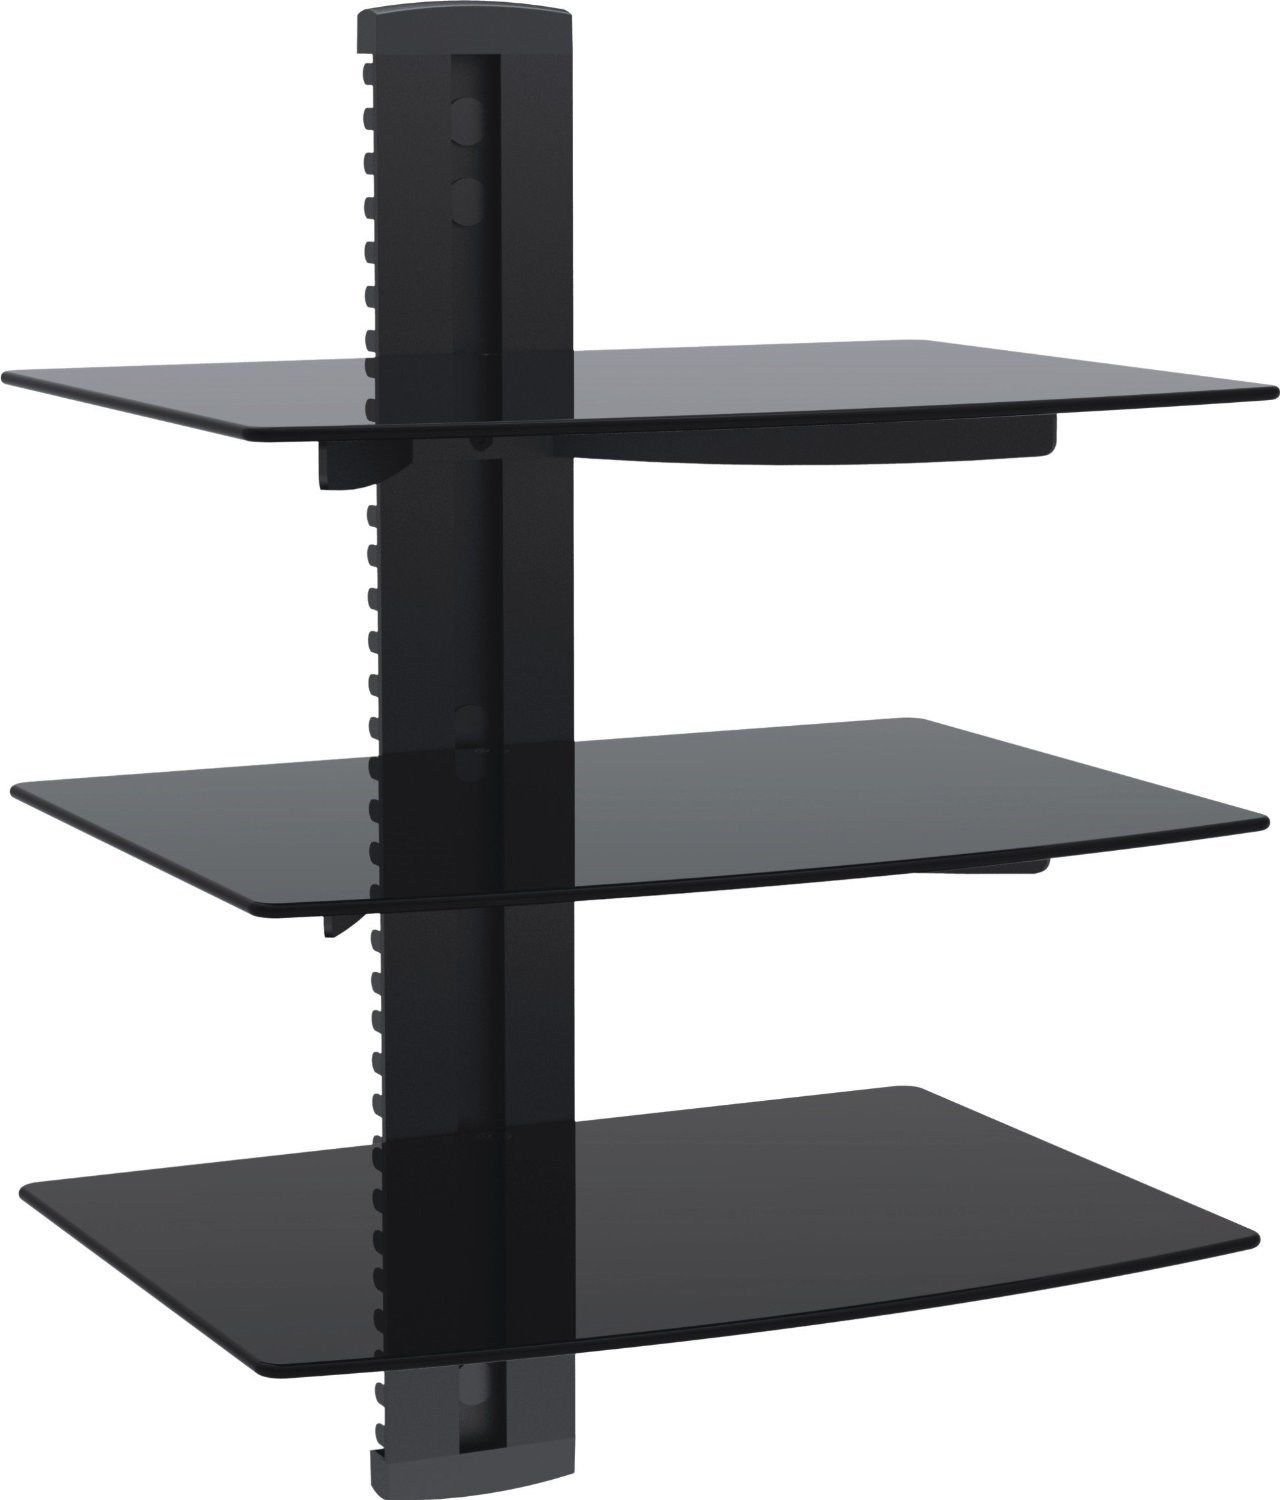 WALI Floating Shelf with Strengthened Tempered Glass for DVD Players, Cable Boxes, Games Consoles, TV Accessories (CS203), 3 Shelf, Black by WALI